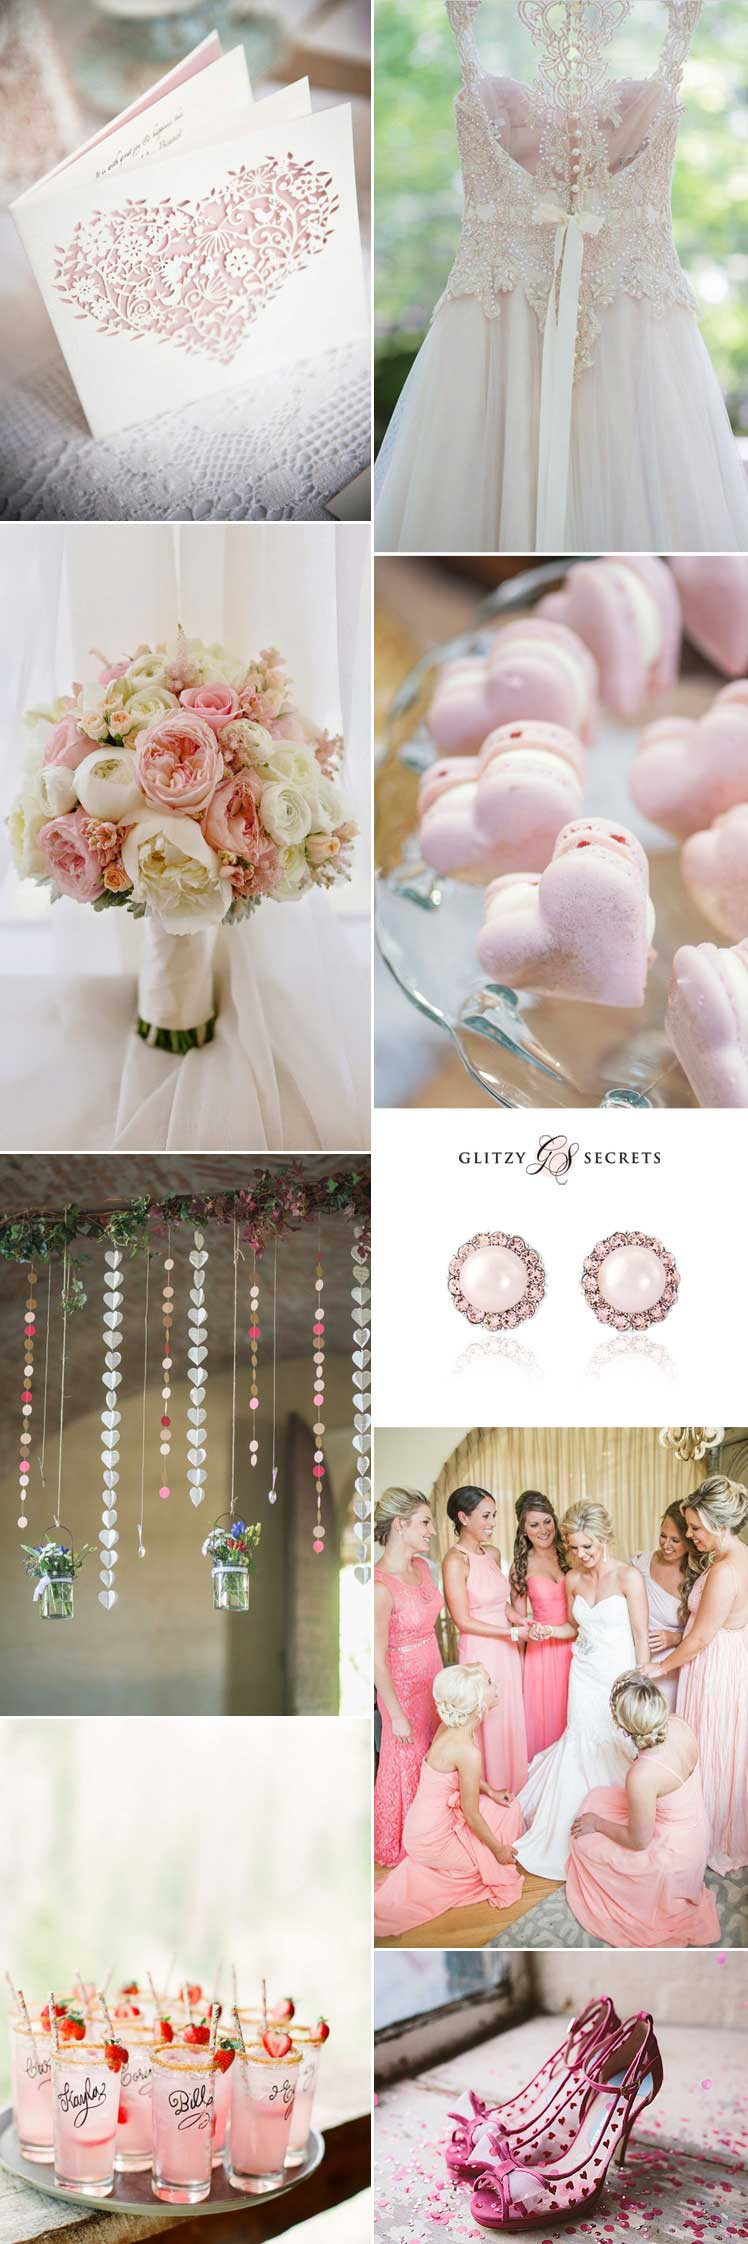 Pretty Valentine heart wedding theme ideas